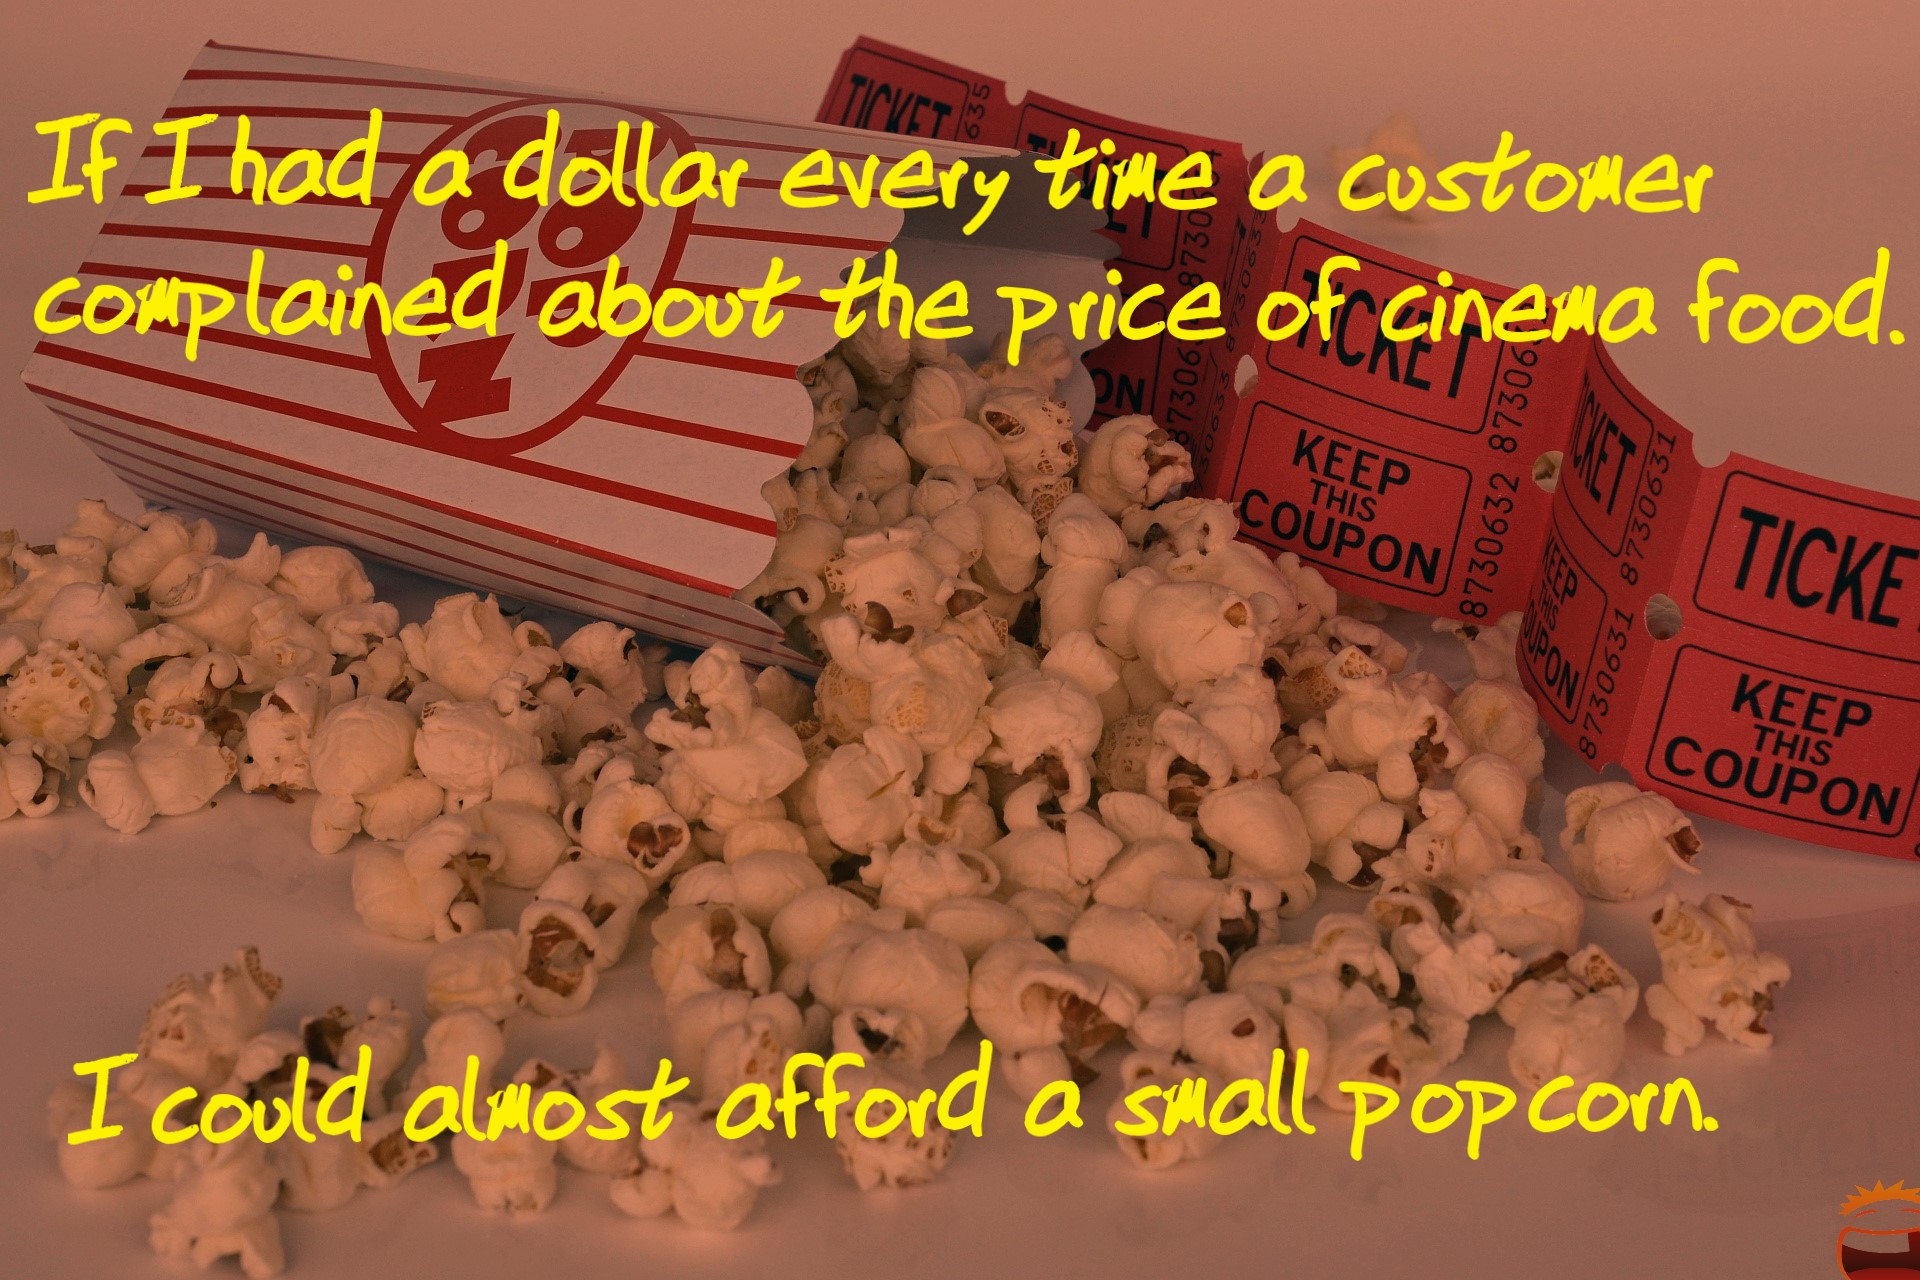 Complaining about price of cinema food